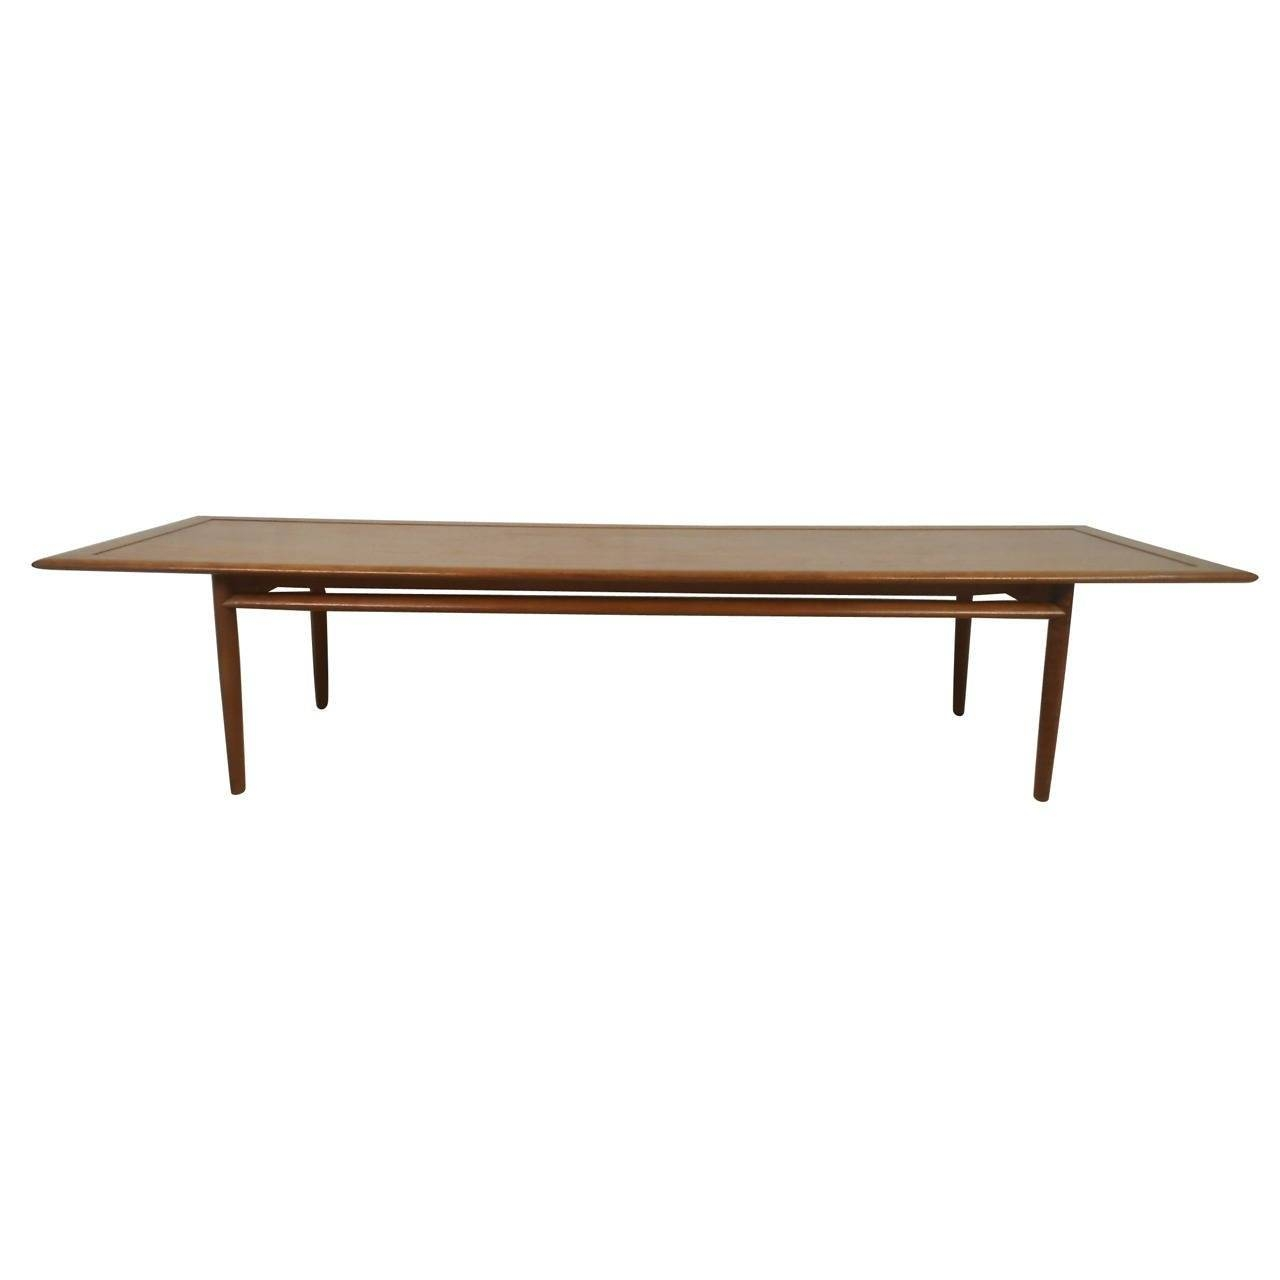 Long Coffee Table From Drexel Parallel Series For Sale At 1Stdibs inside Long Coffee Tables (Image 10 of 15)